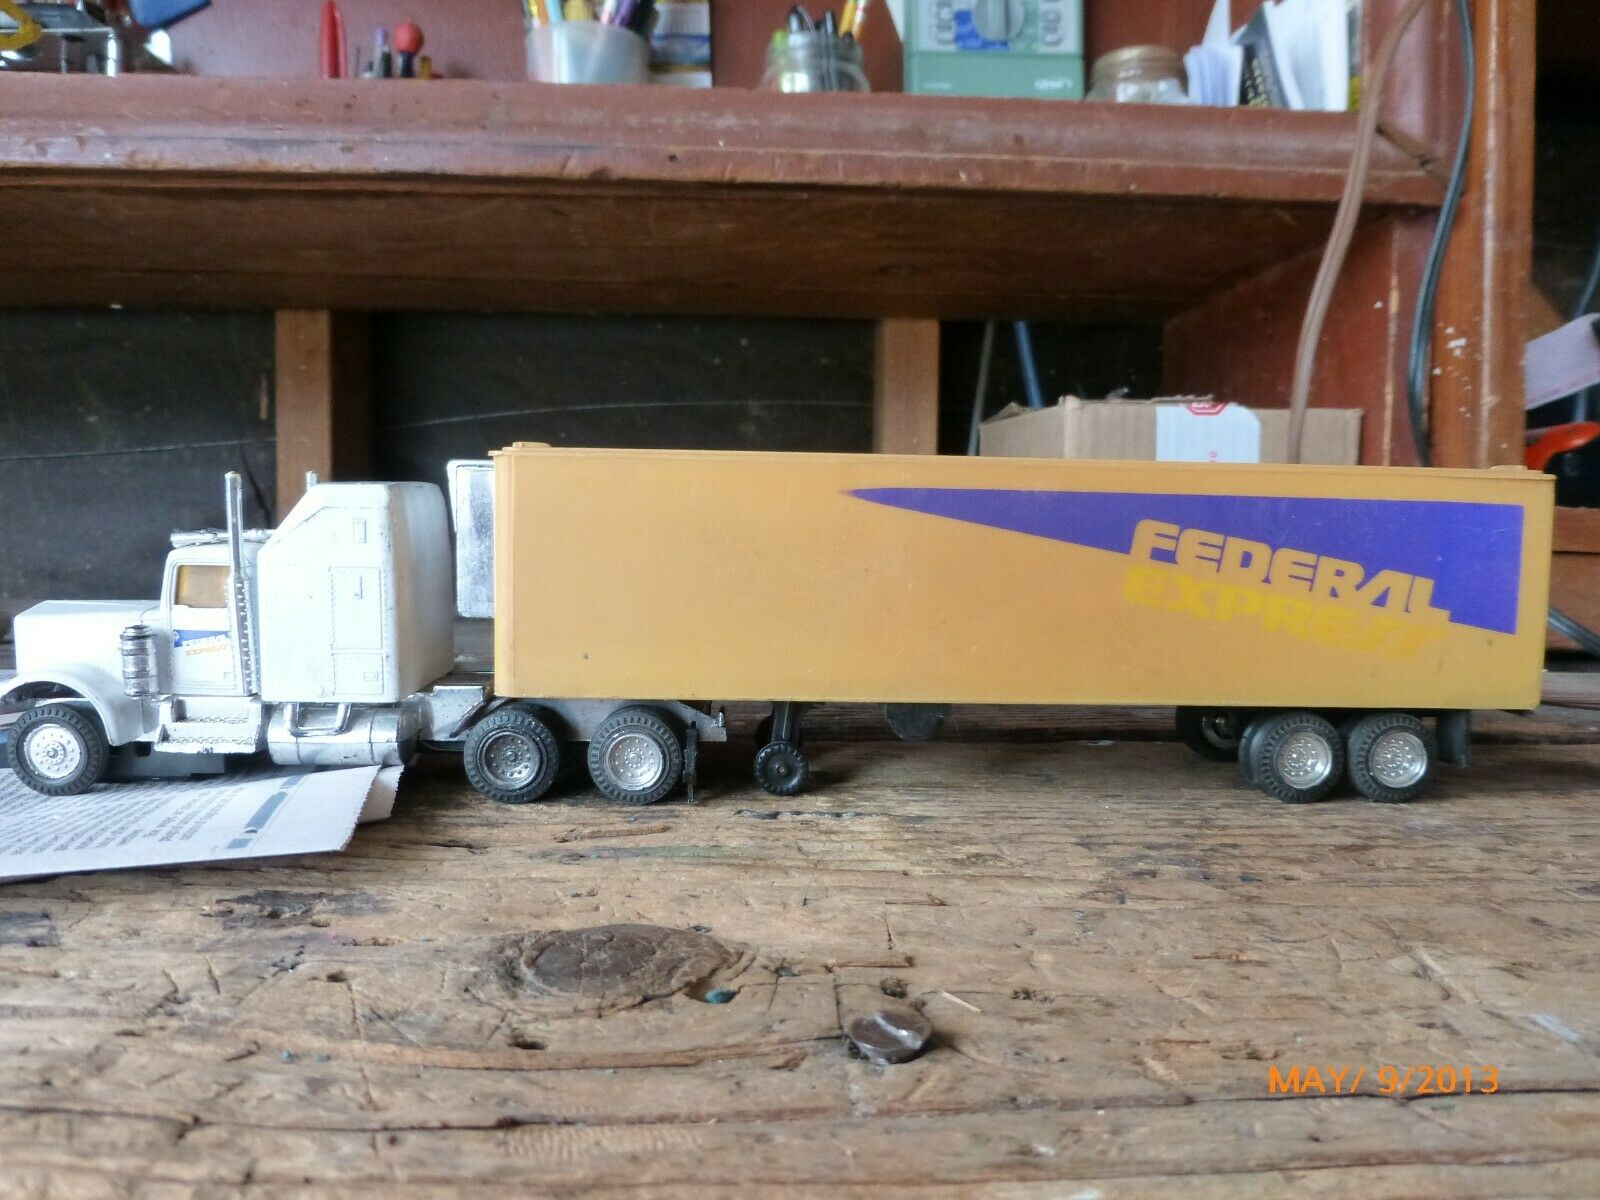 FEDERAL EXPRESS TRACTOR TRAILER VINTAGE 1970'S